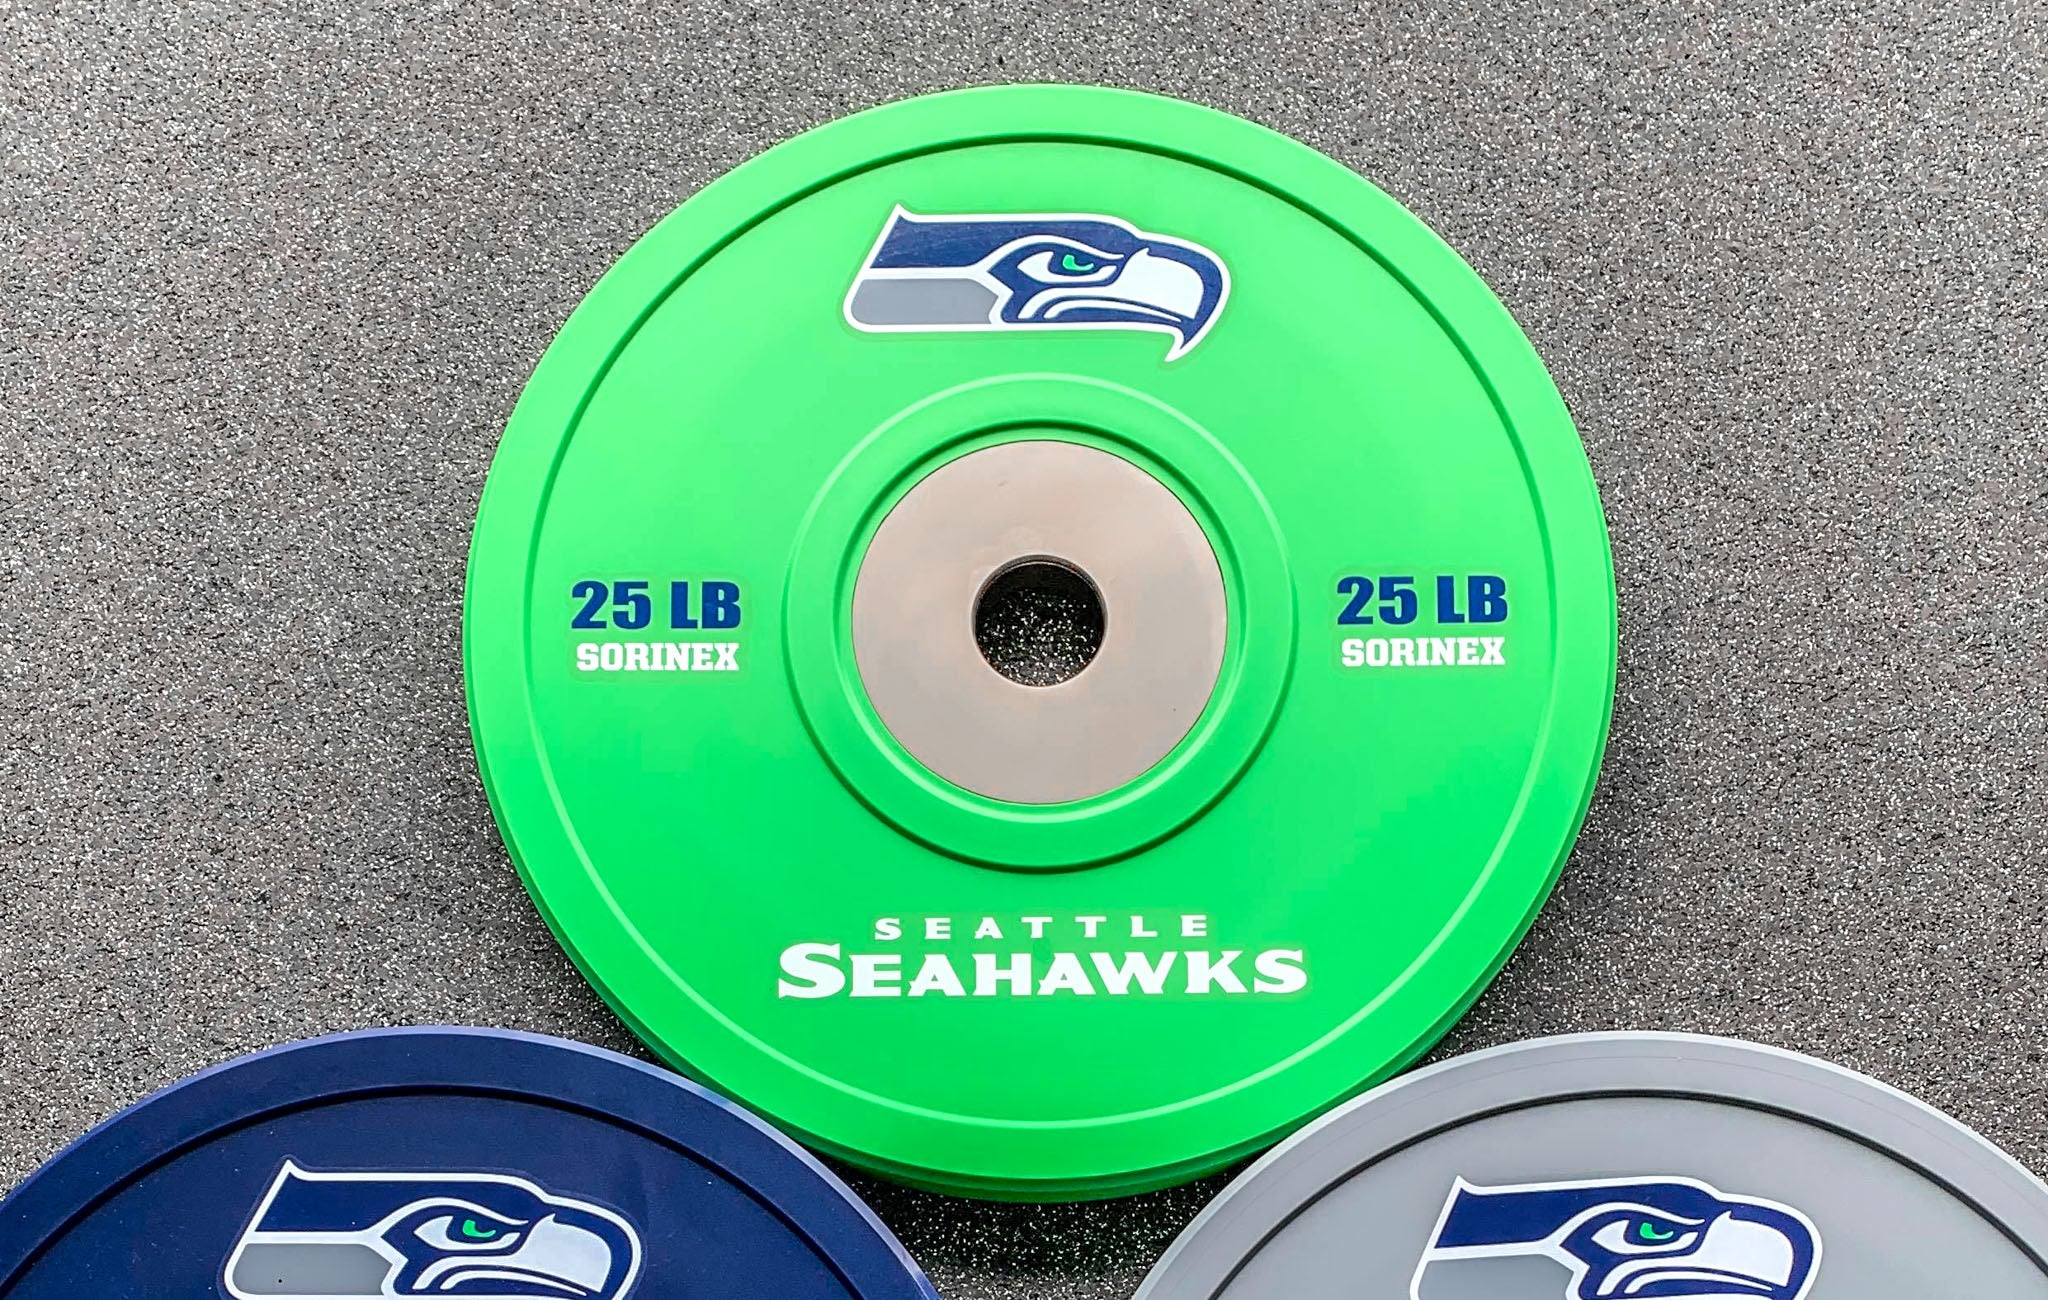 Seahawks Bumpers